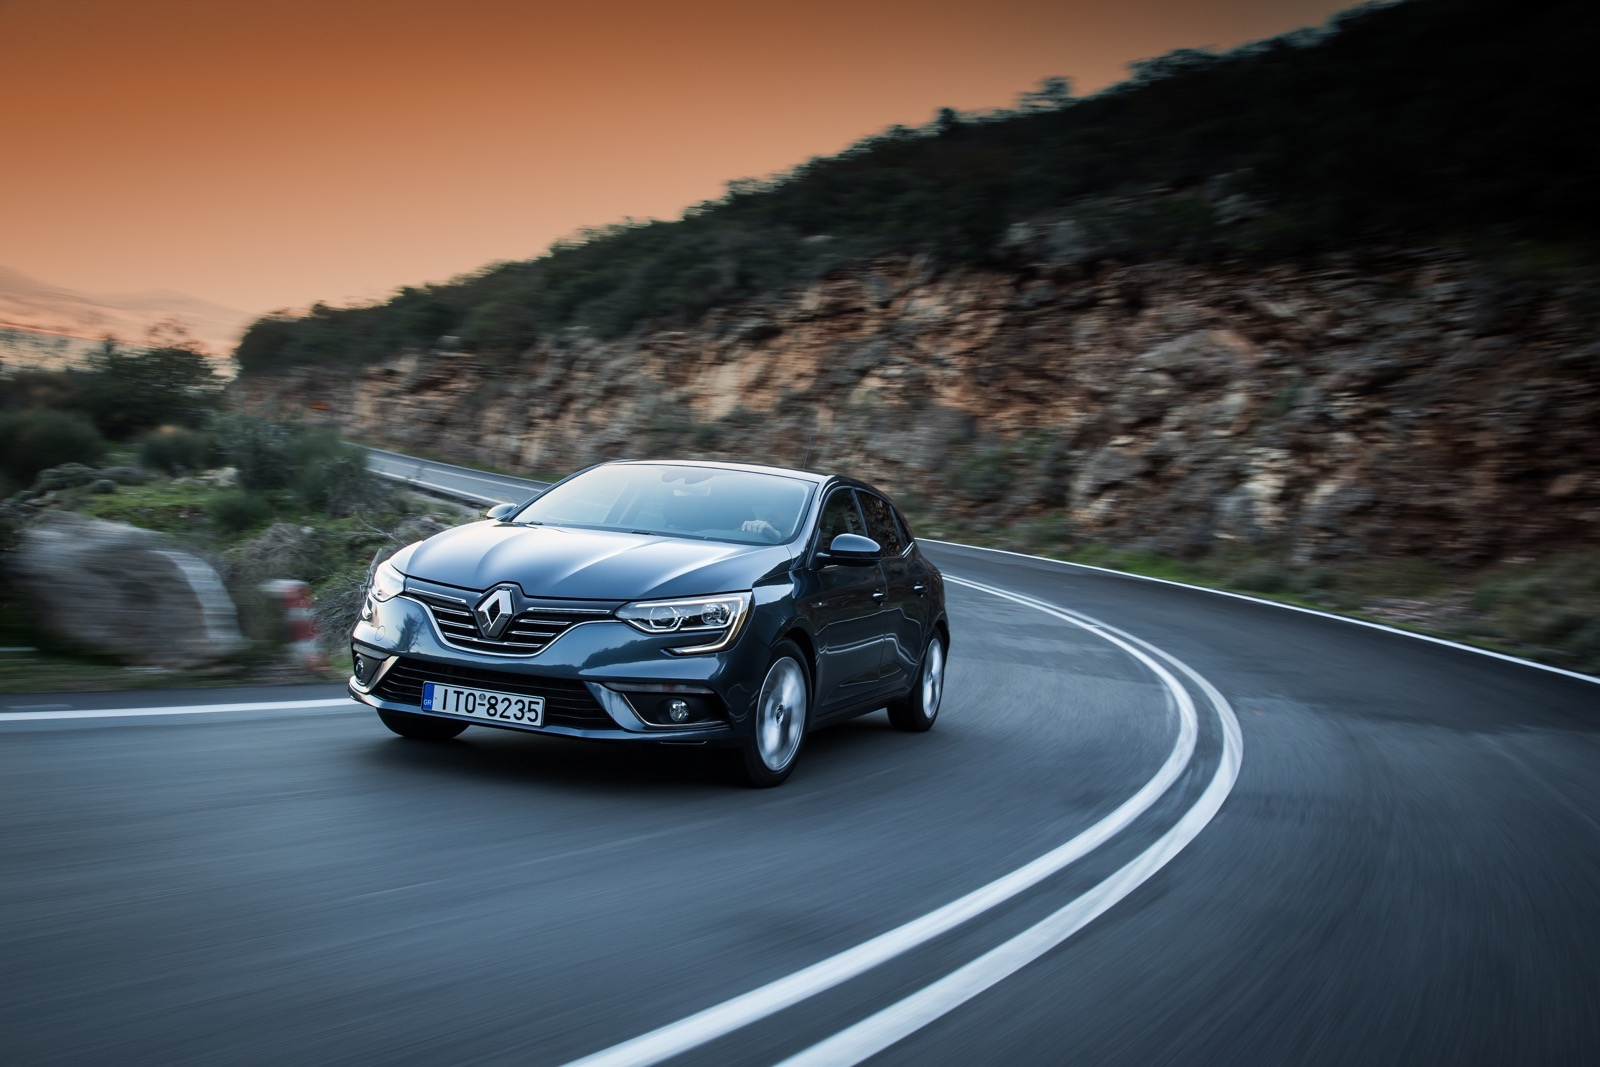 First_Drive_Renault_Megane_79